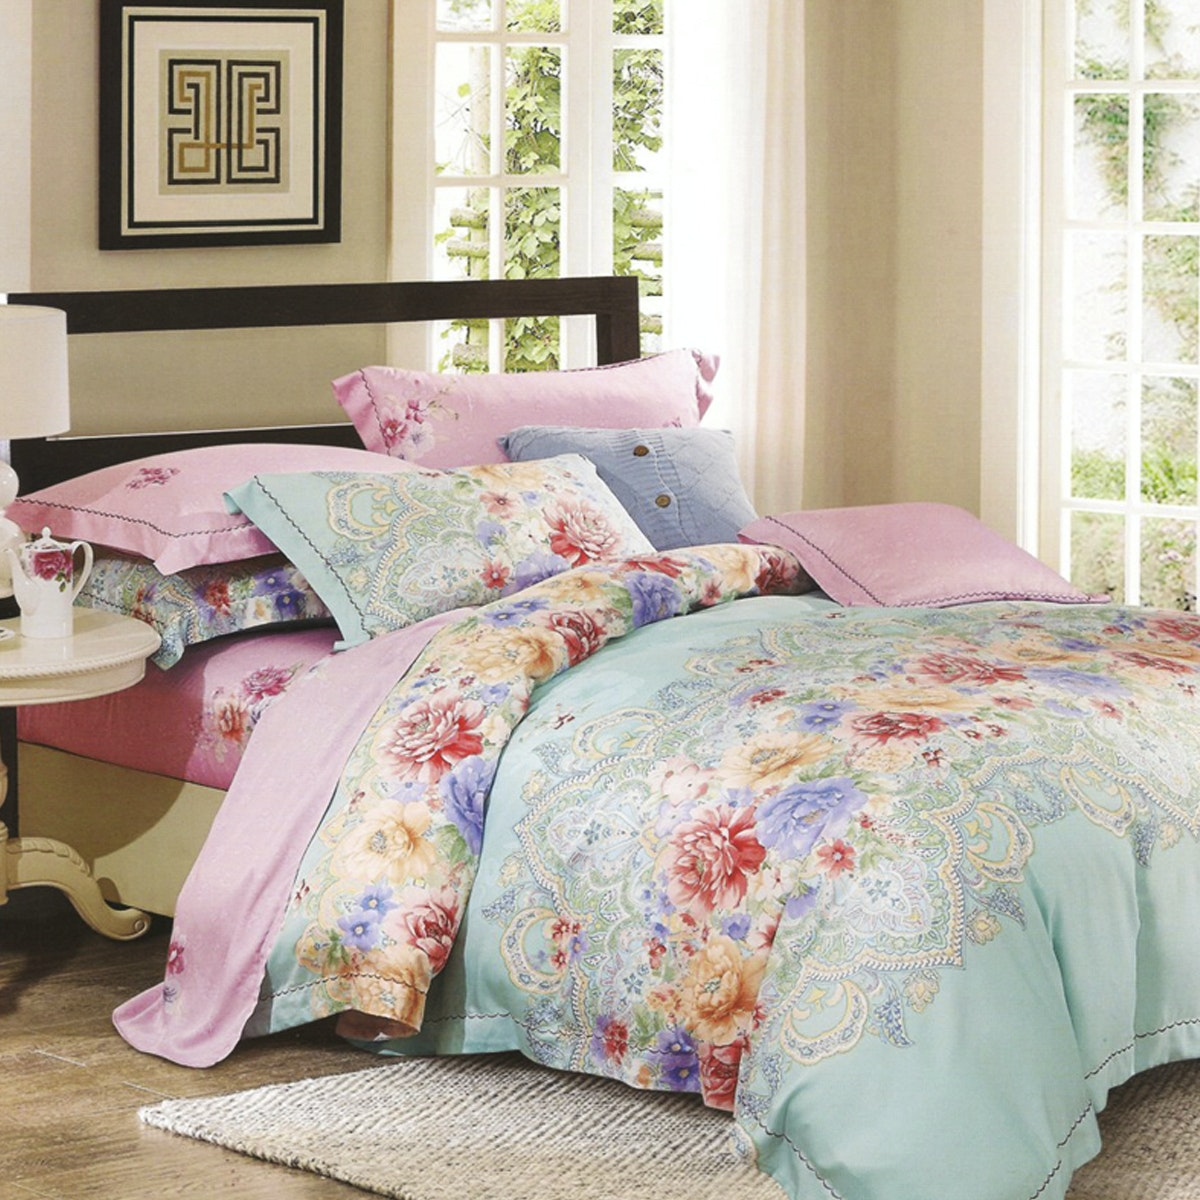 Sleep Buddy Set Sprei dan Bed Cover Floral Classic Tencel 180x200x30